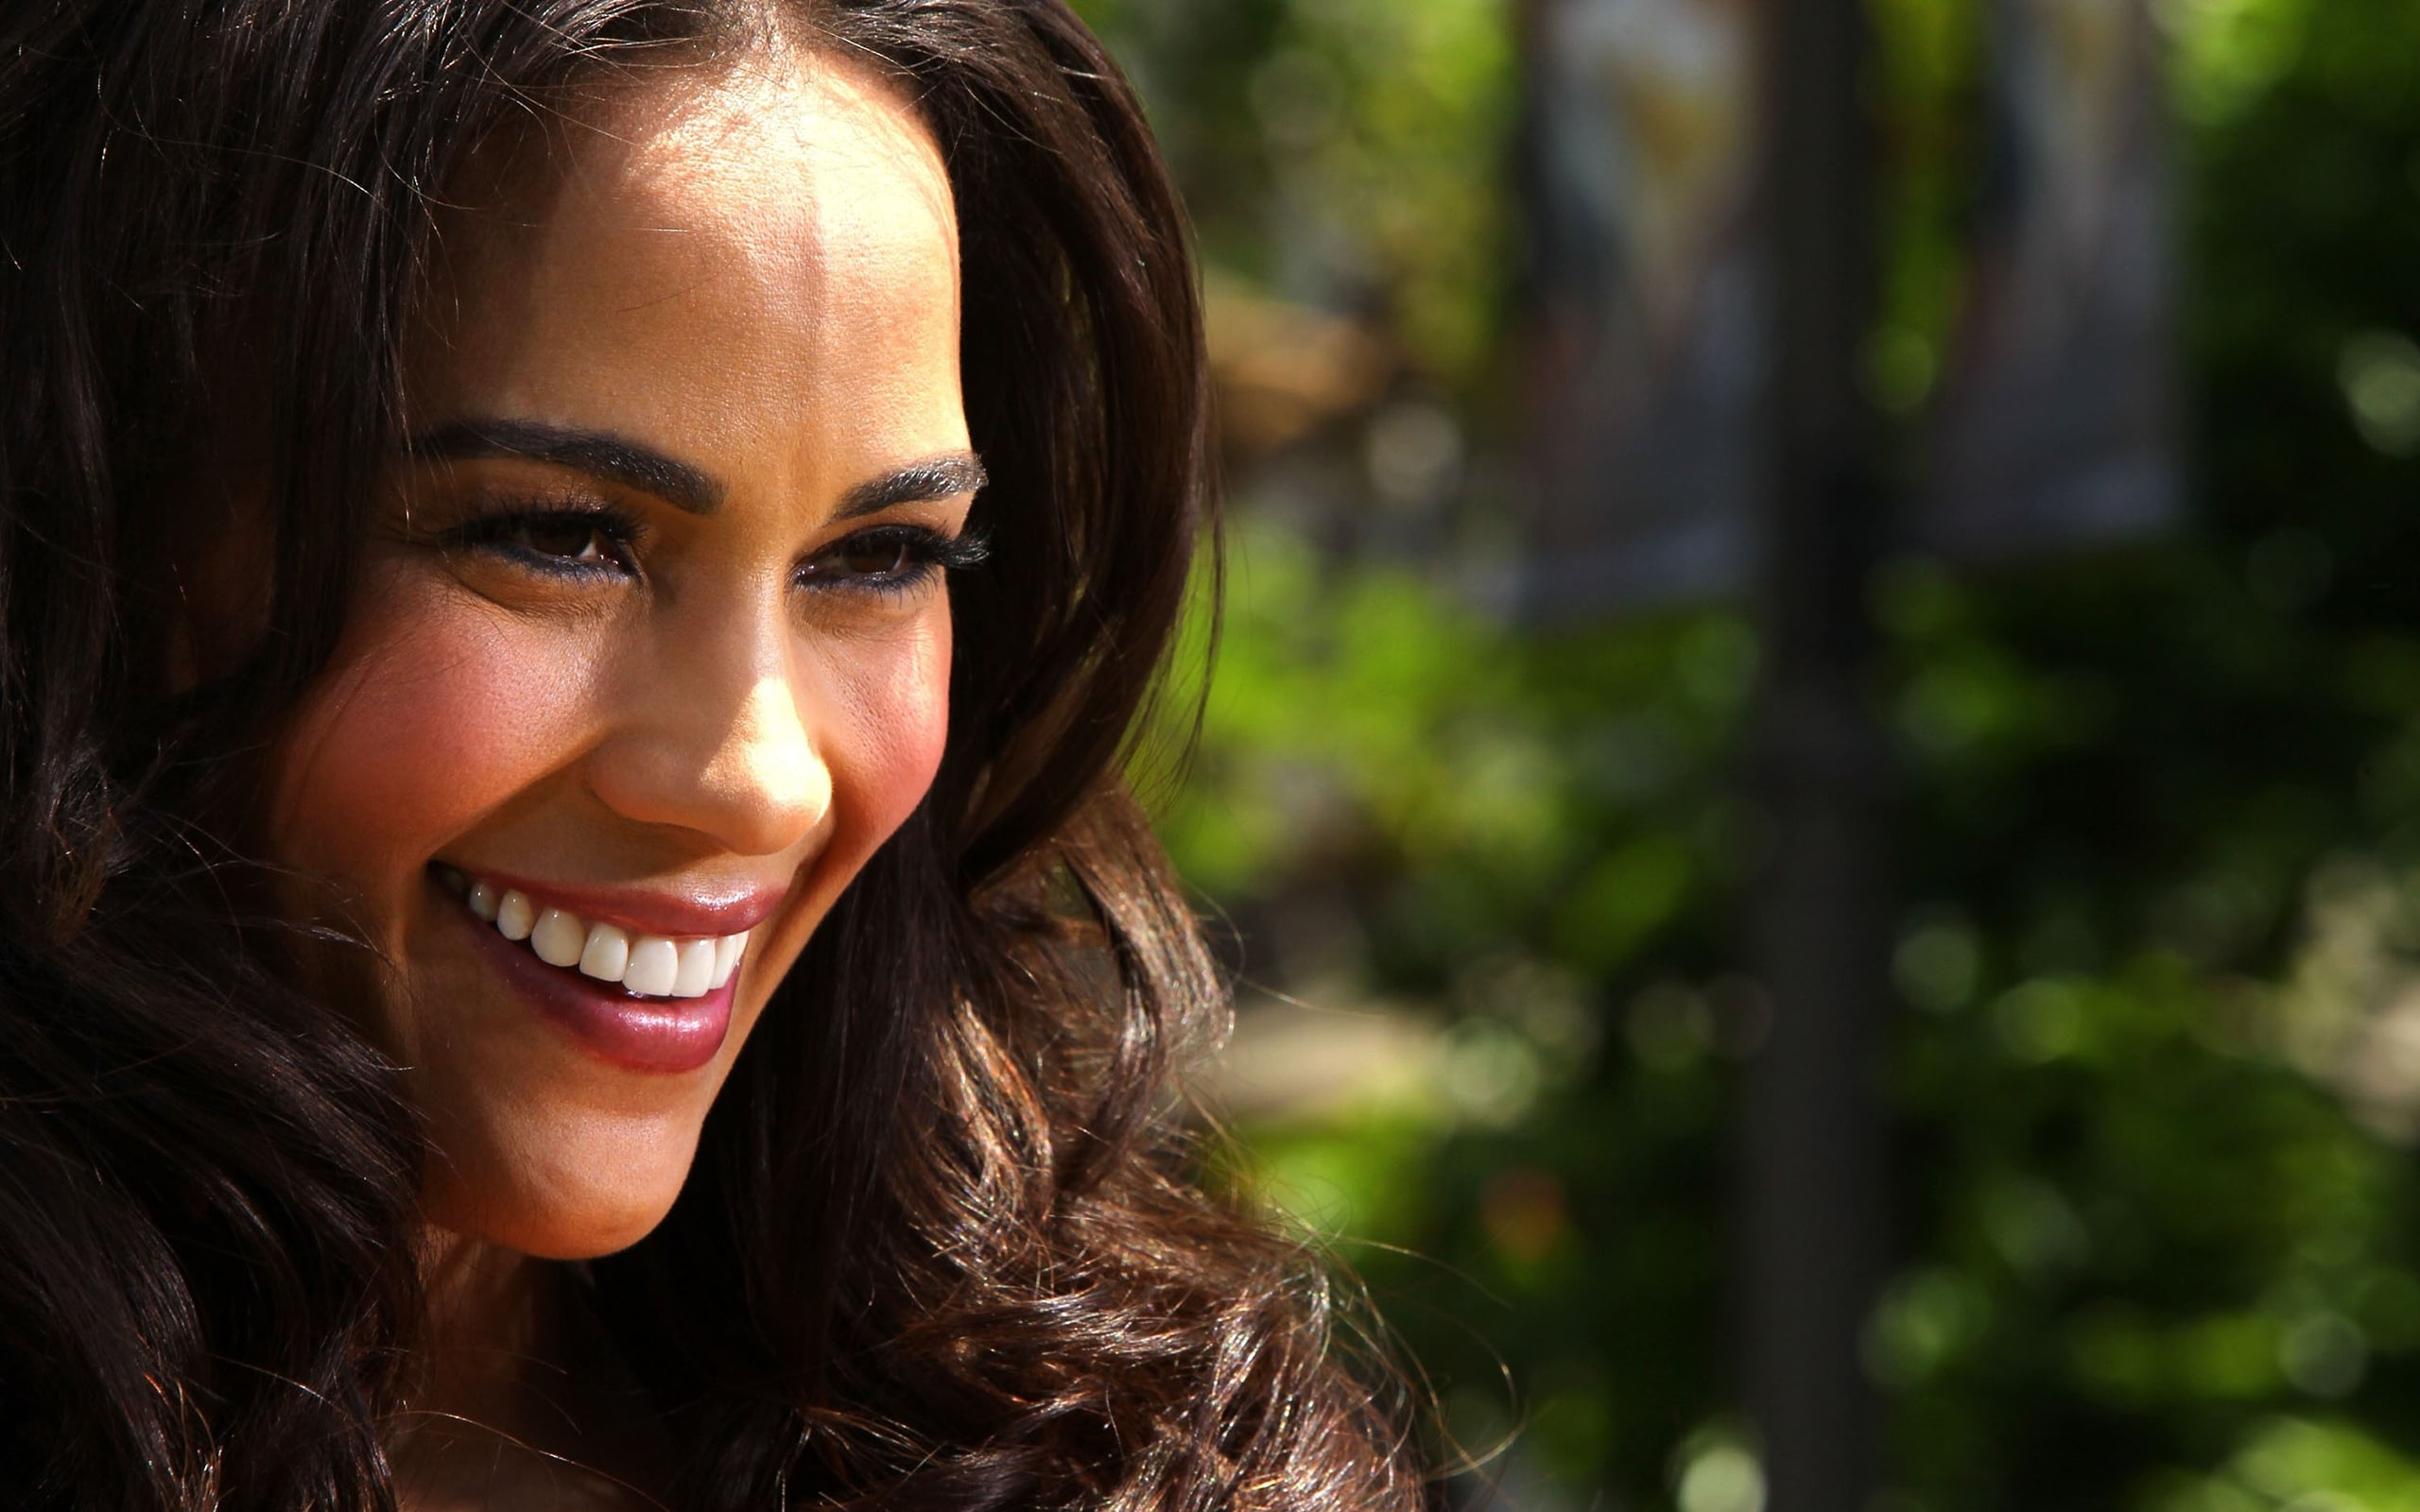 Download The Car Wallpaper 22 Paula Patton Wallpapers High Quality Download